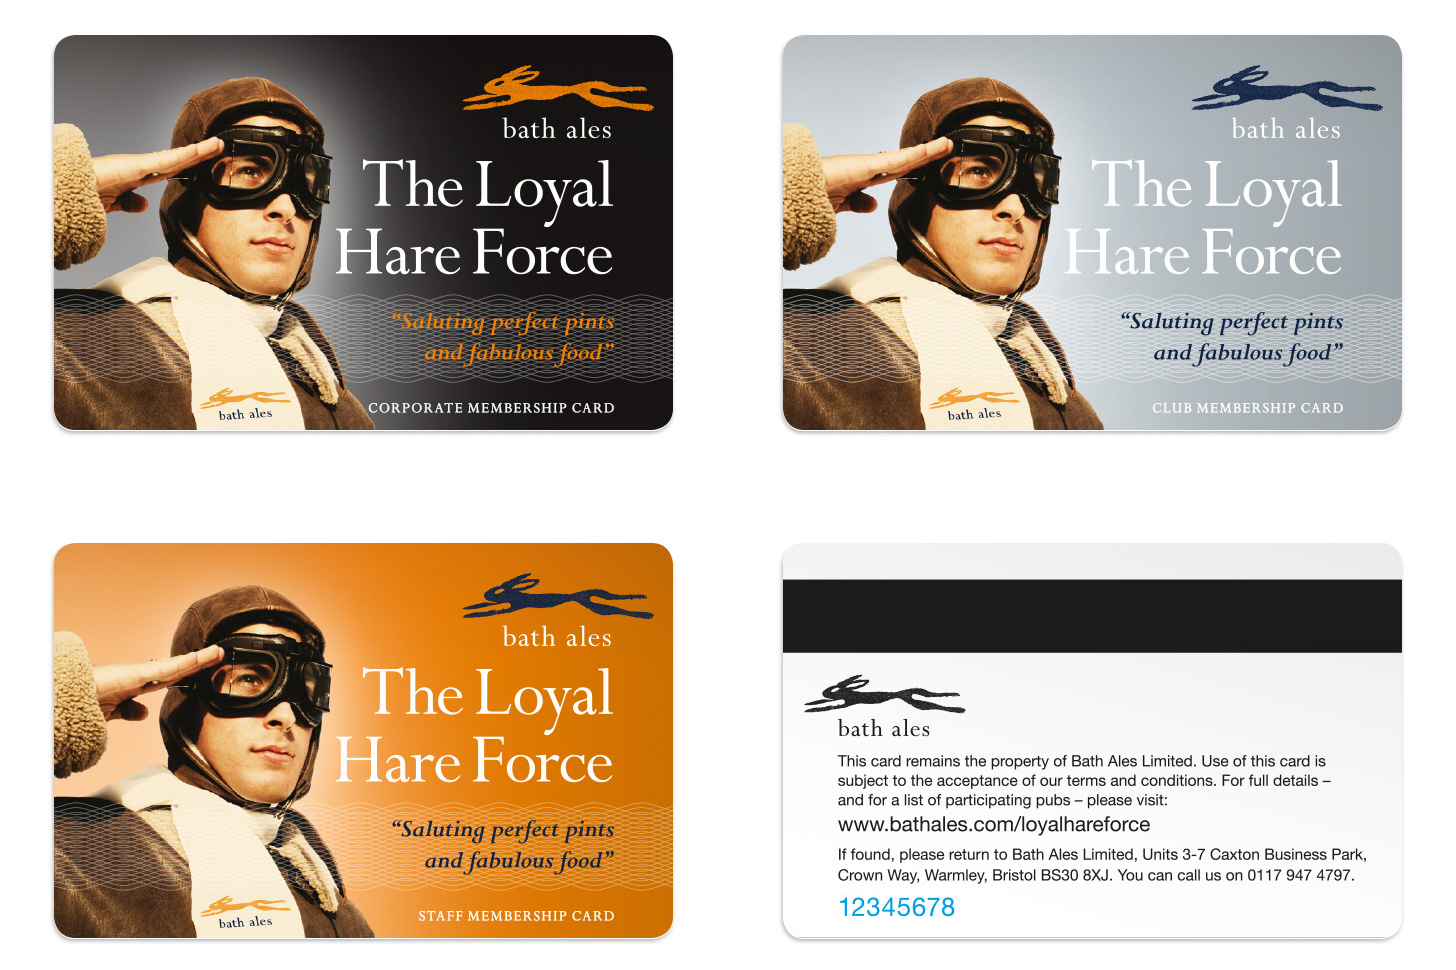 The Loyal Hare Force membership cards